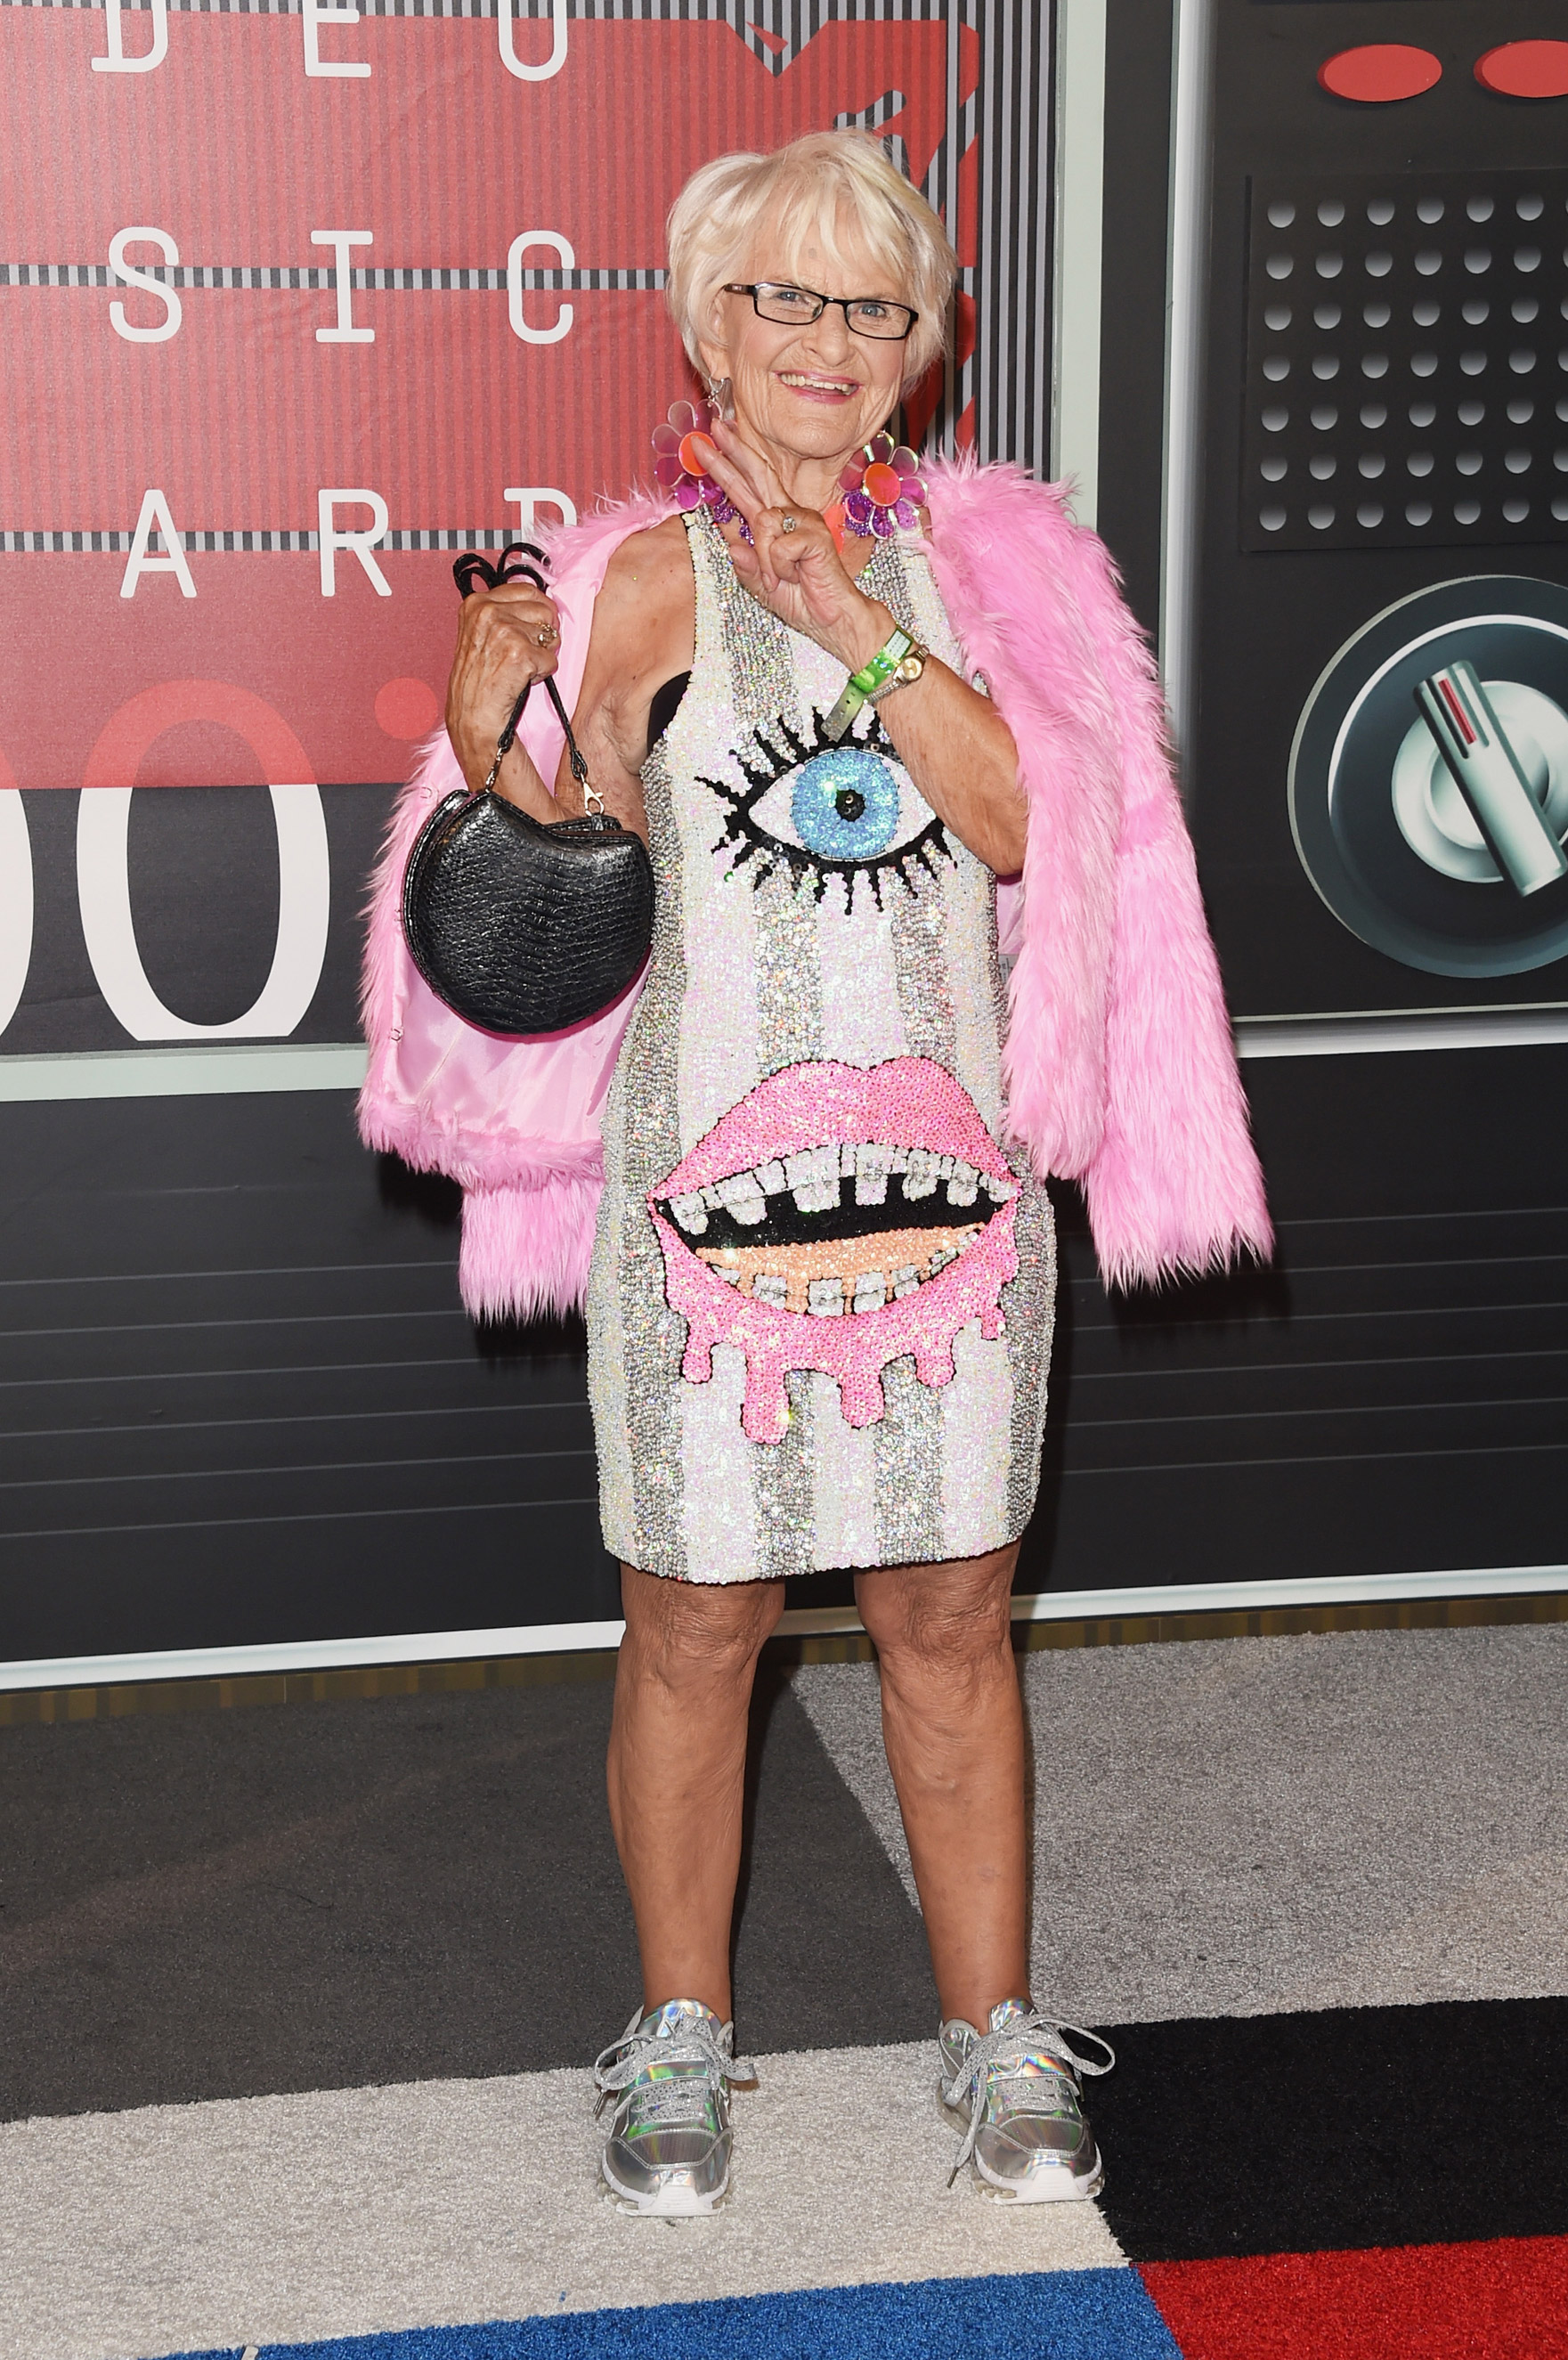 Internet personality Baddie Winkle arrives at the 2015 MTV Video Music Awards at Microsoft Theater on Aug. 30, 2015 in Los Angeles.